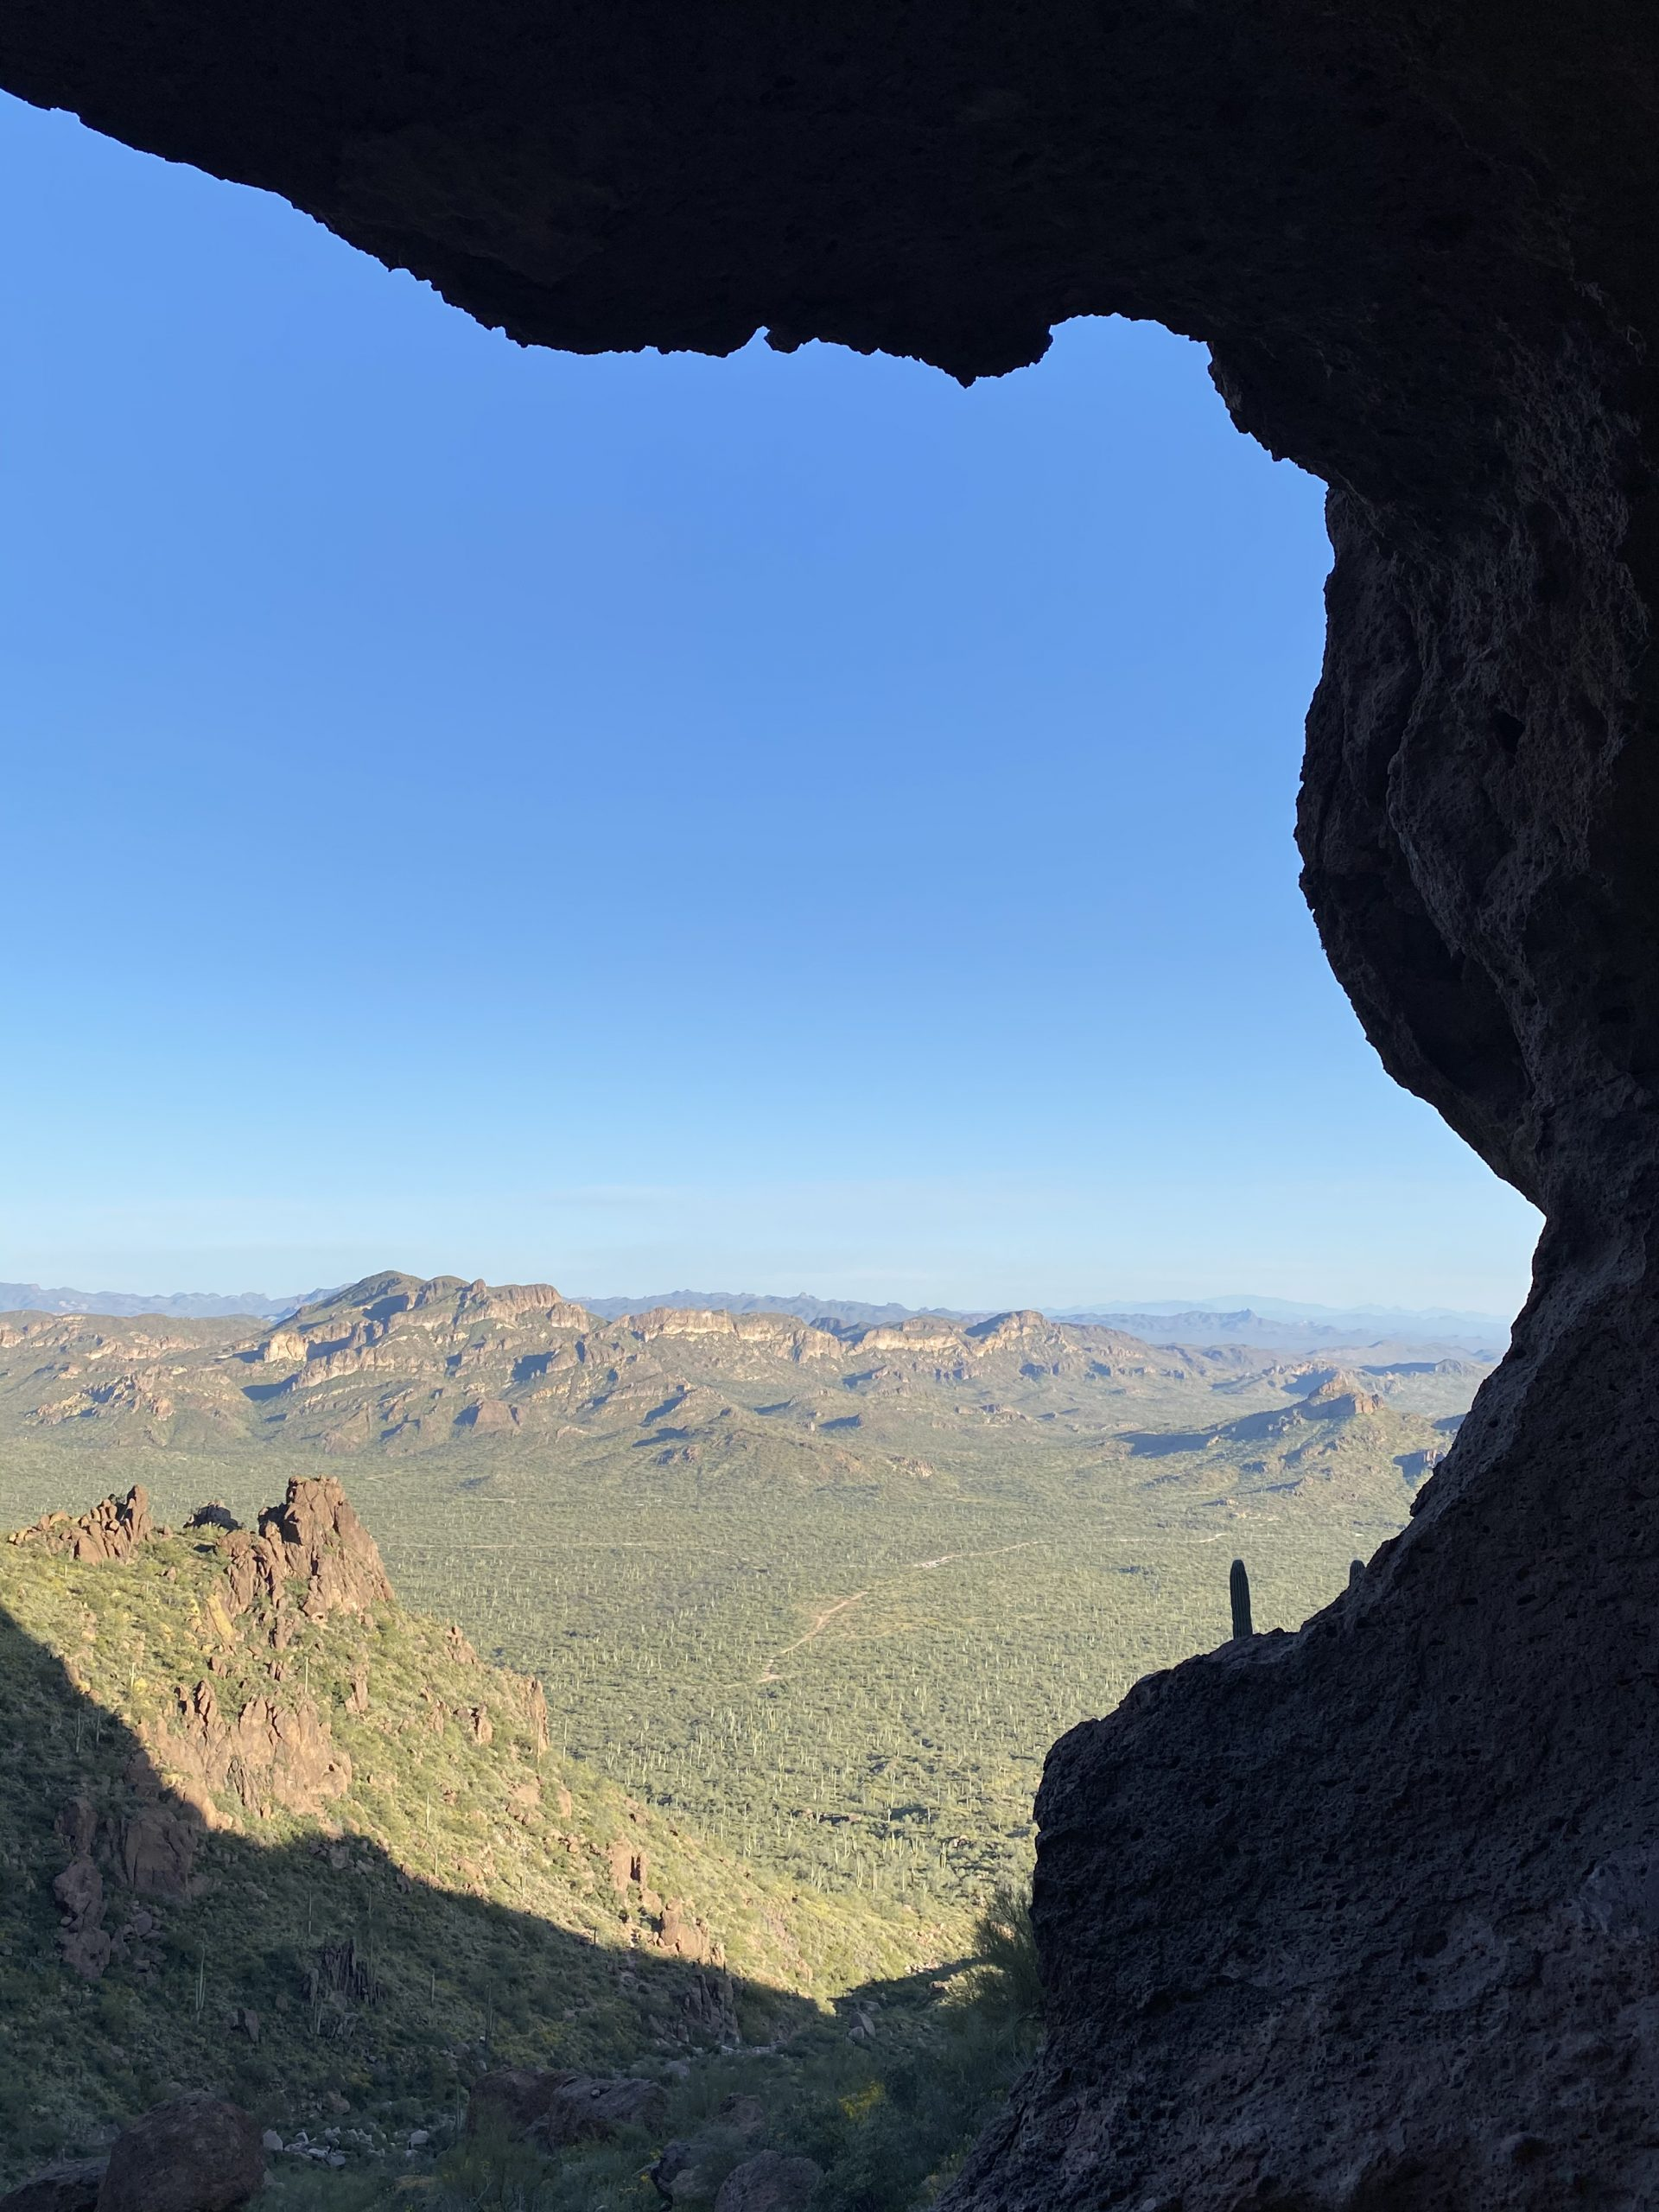 Hike The Wave Cave Trail in The Superstition Mountains